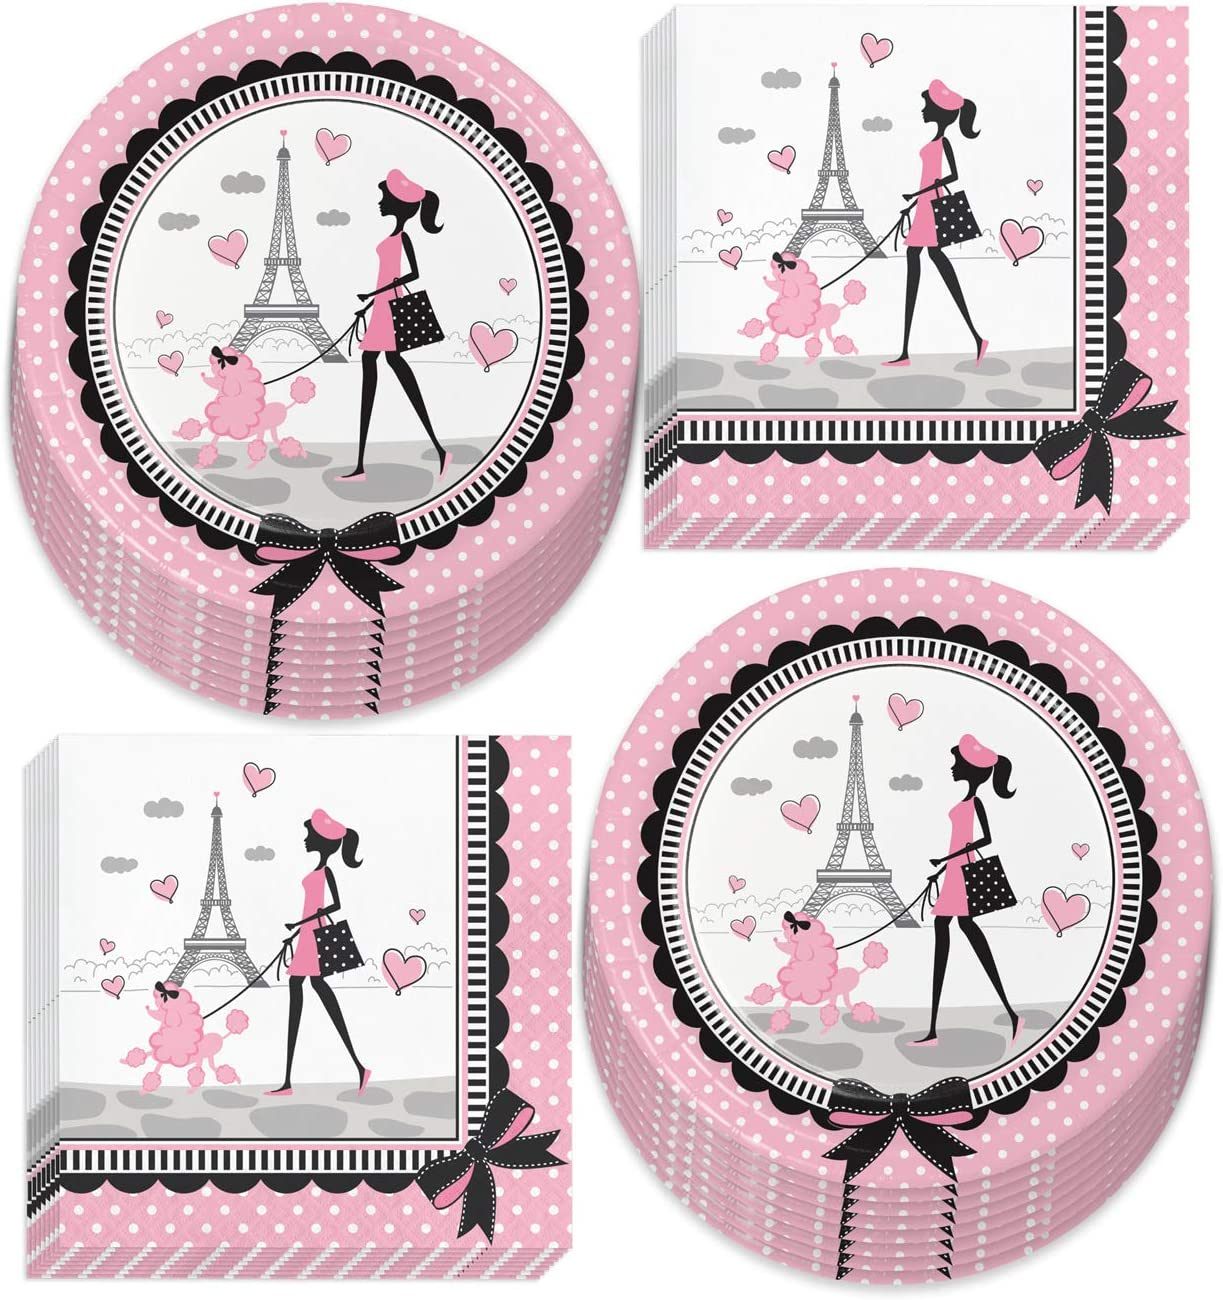 Paris Party Supplies - French Theme Paper Dinner Plates and Luncheon Napkins (Serves 16)